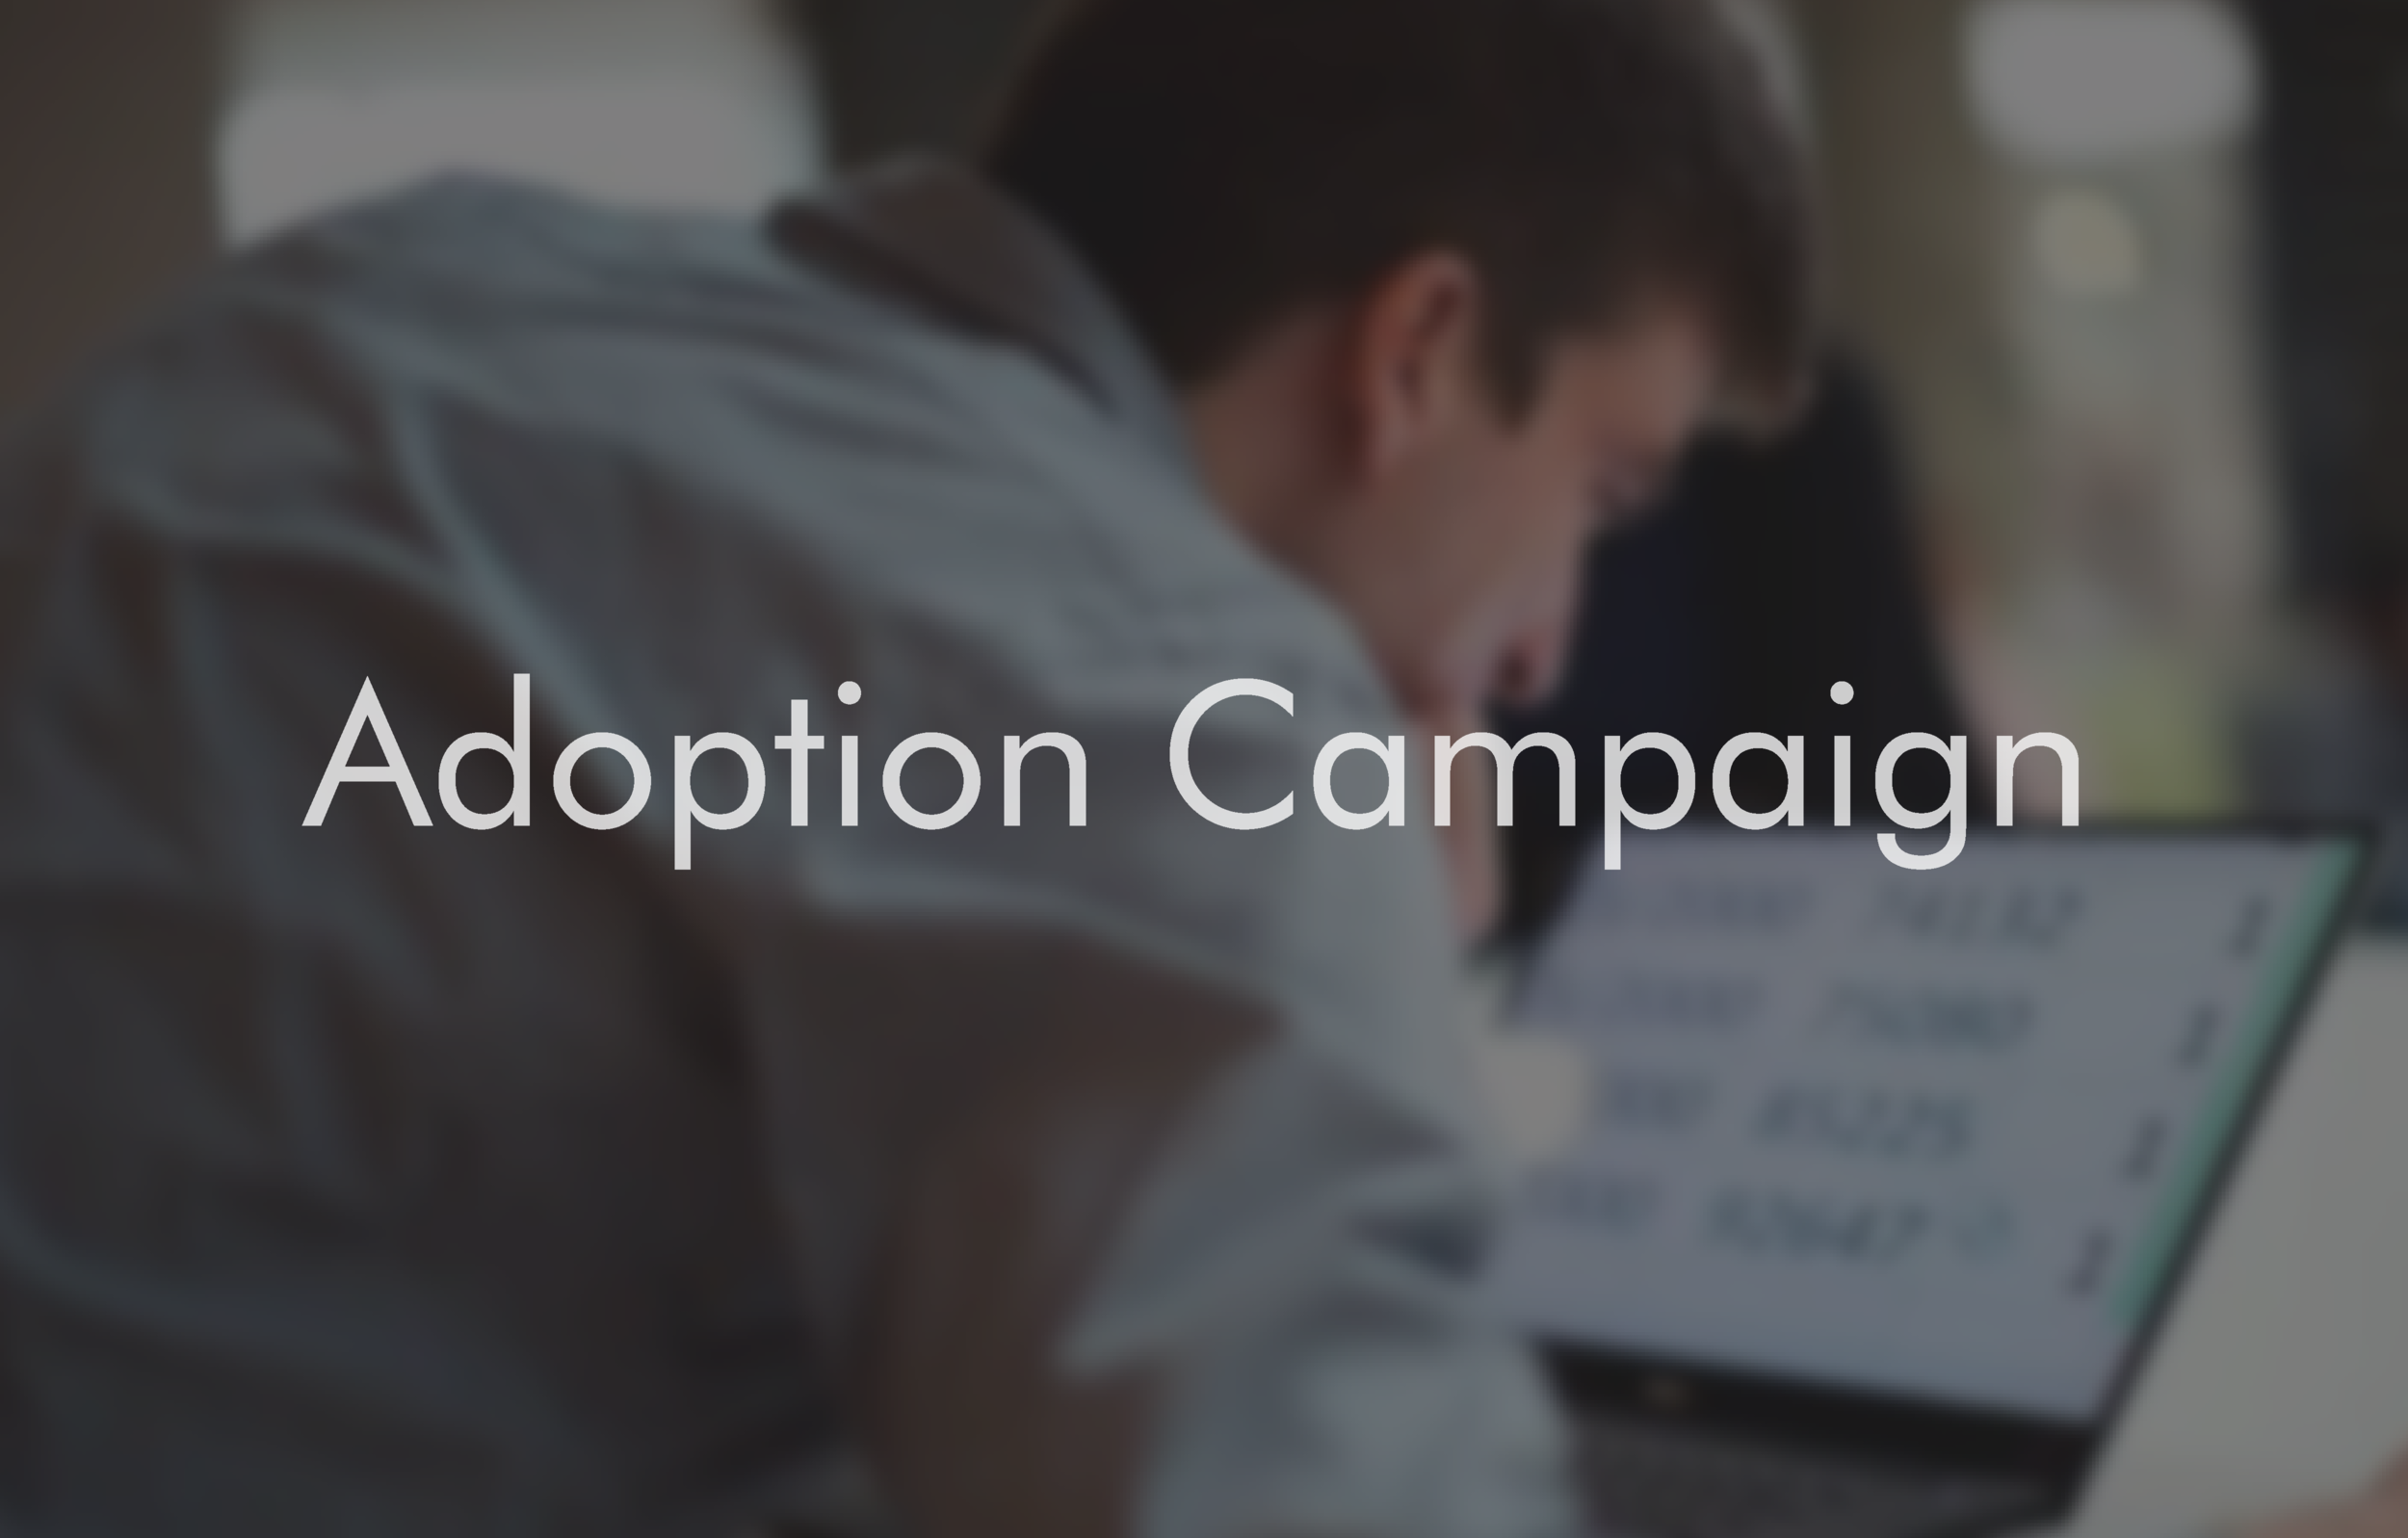 Adoption Campaign-01.png